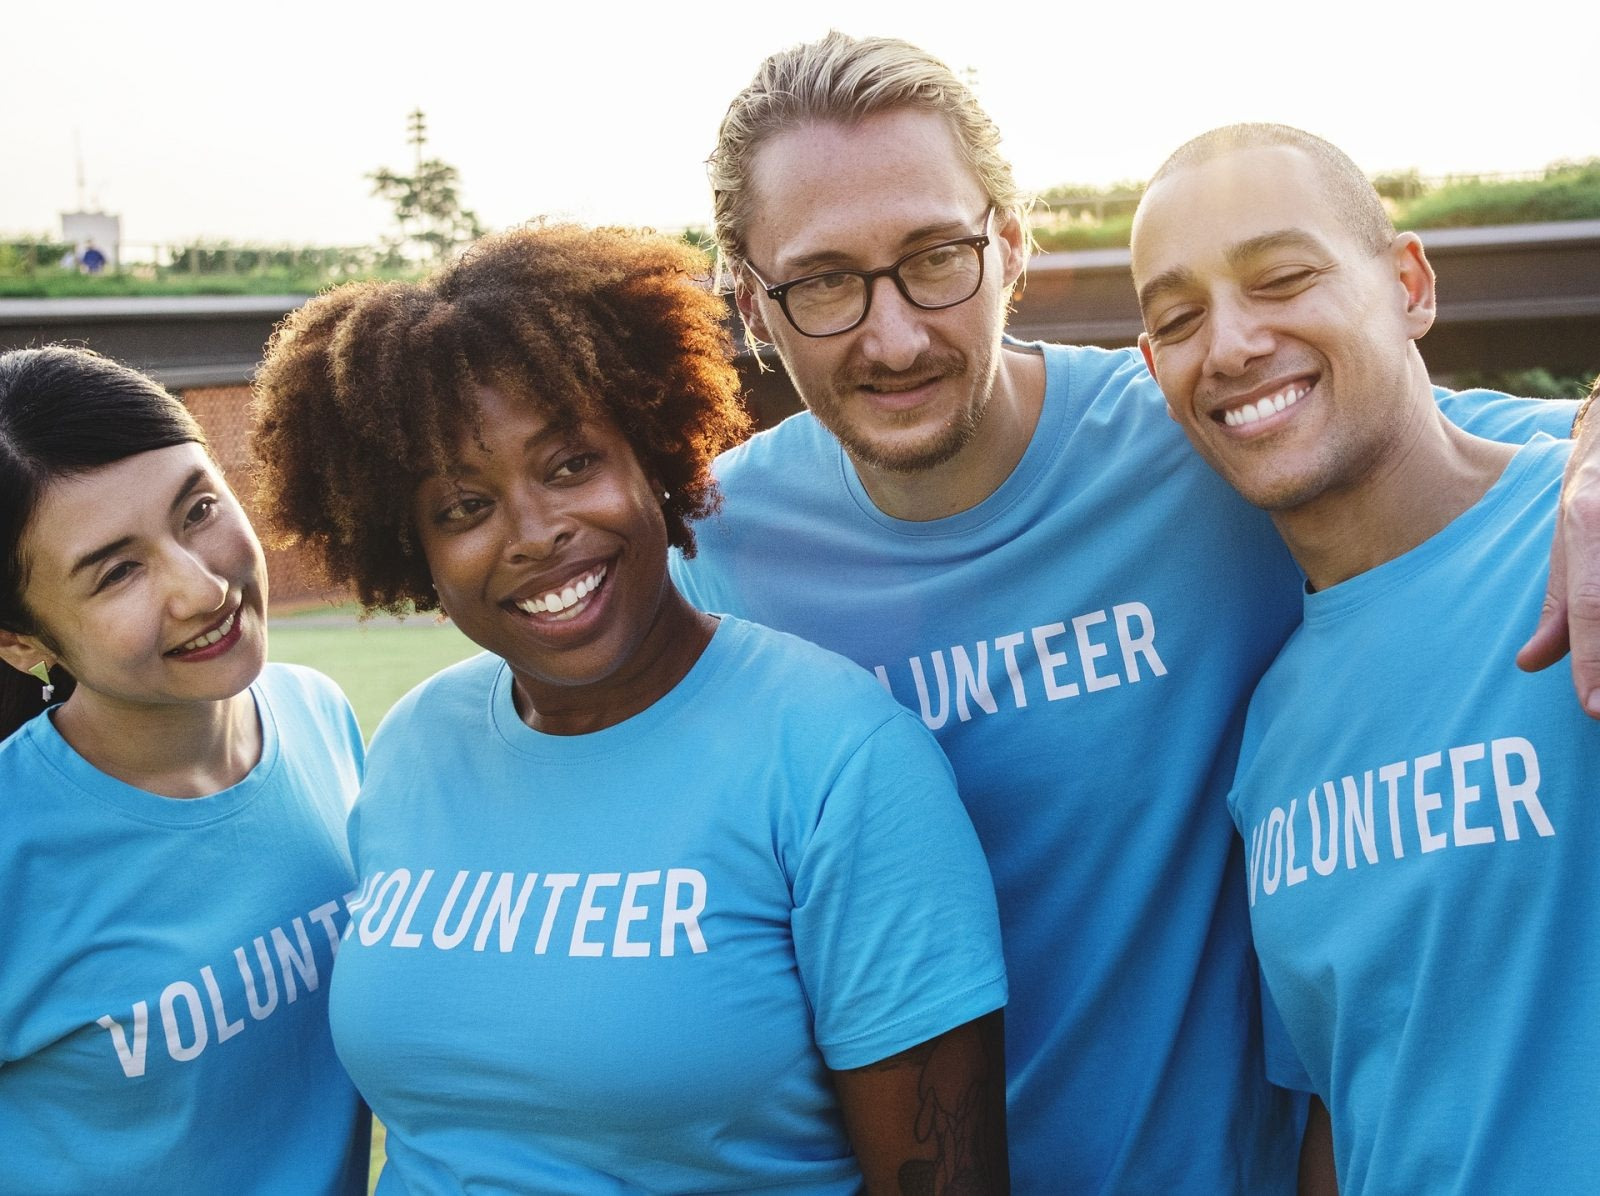 Two men and two women wearing volunteer's t shirts smiling